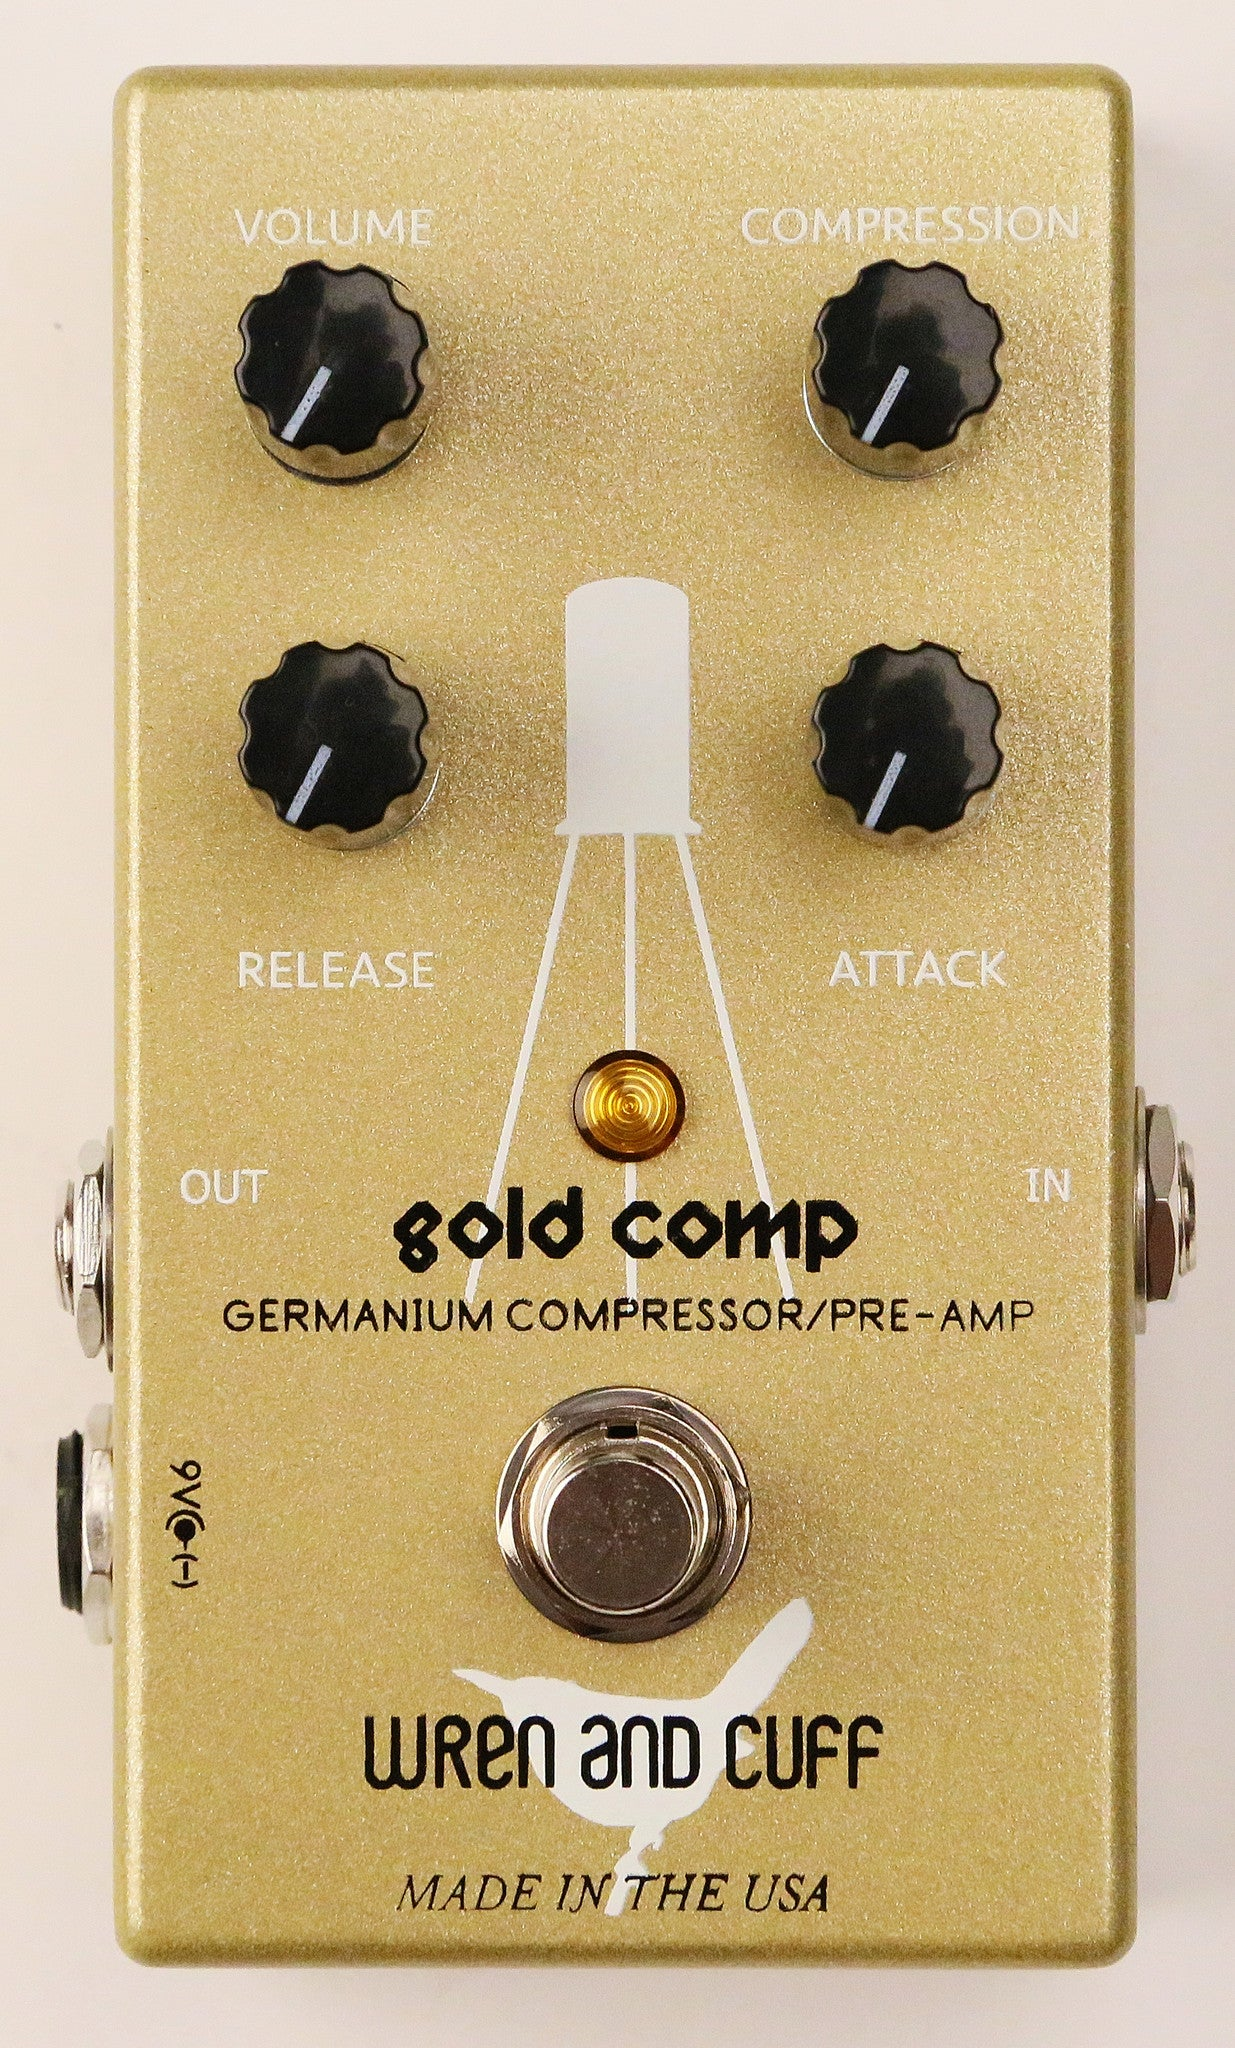 Wren & Cuff Gold Comp Compressor